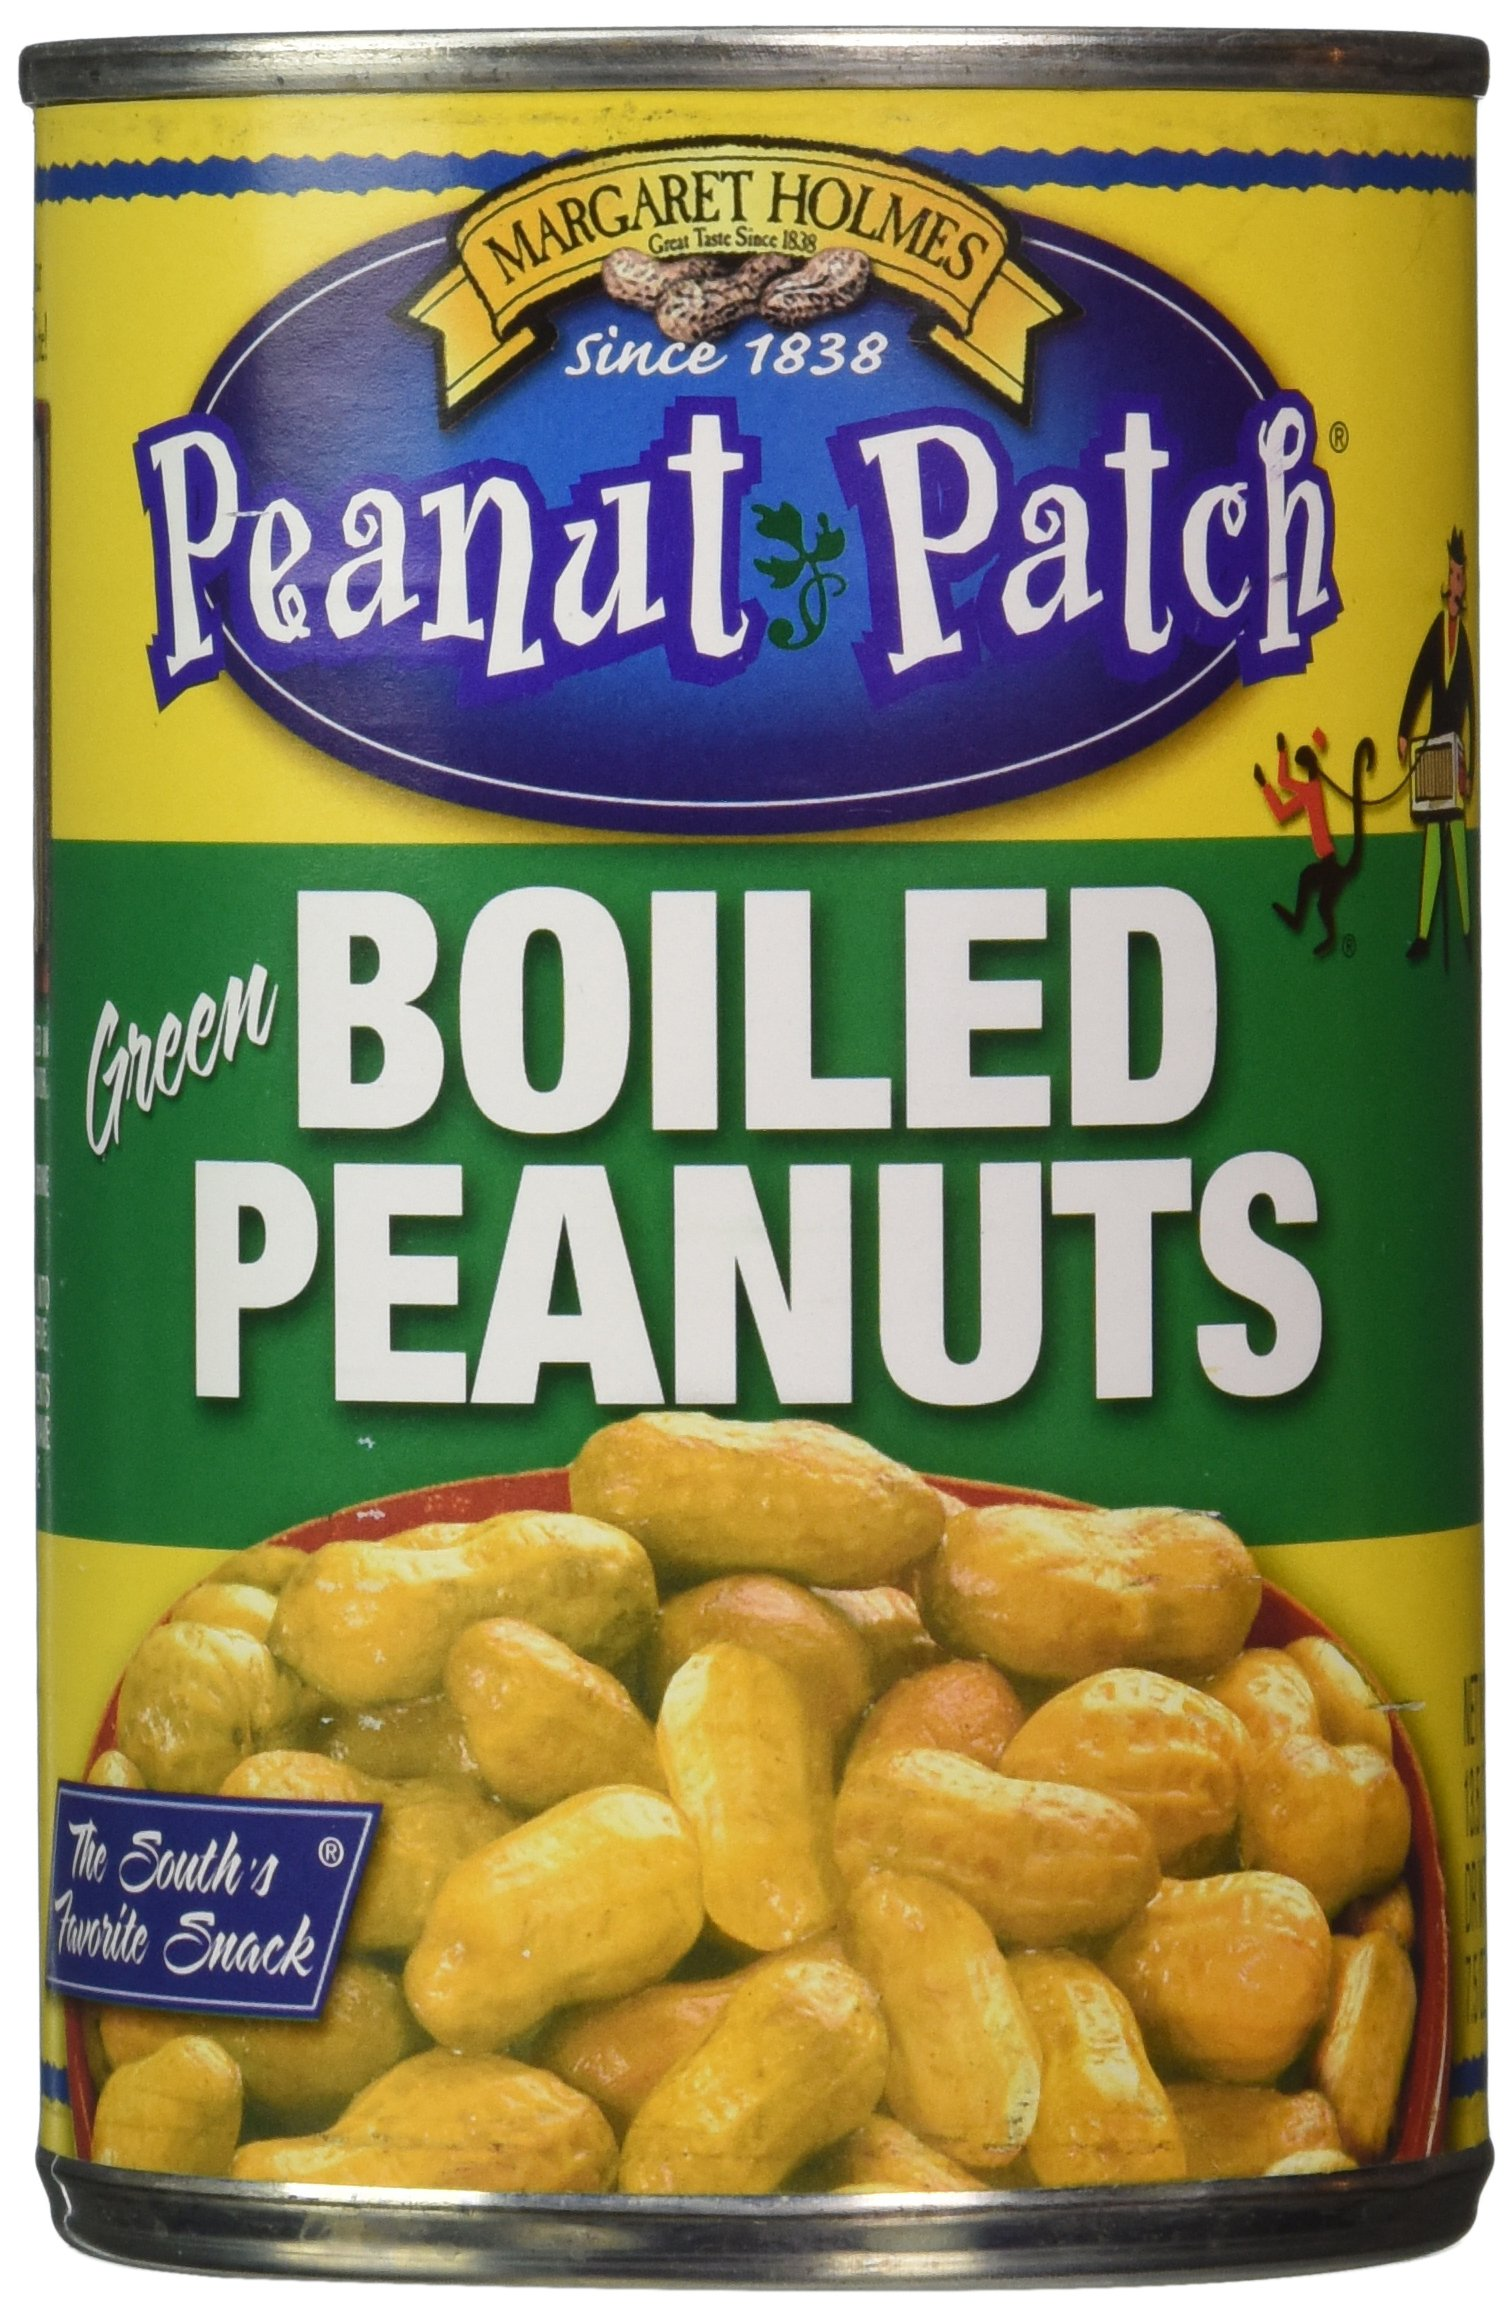 Margaret Holmes, Green Boiled Peanuts, 13.5oz Cans (Pack of 12) by Margaret Holmes